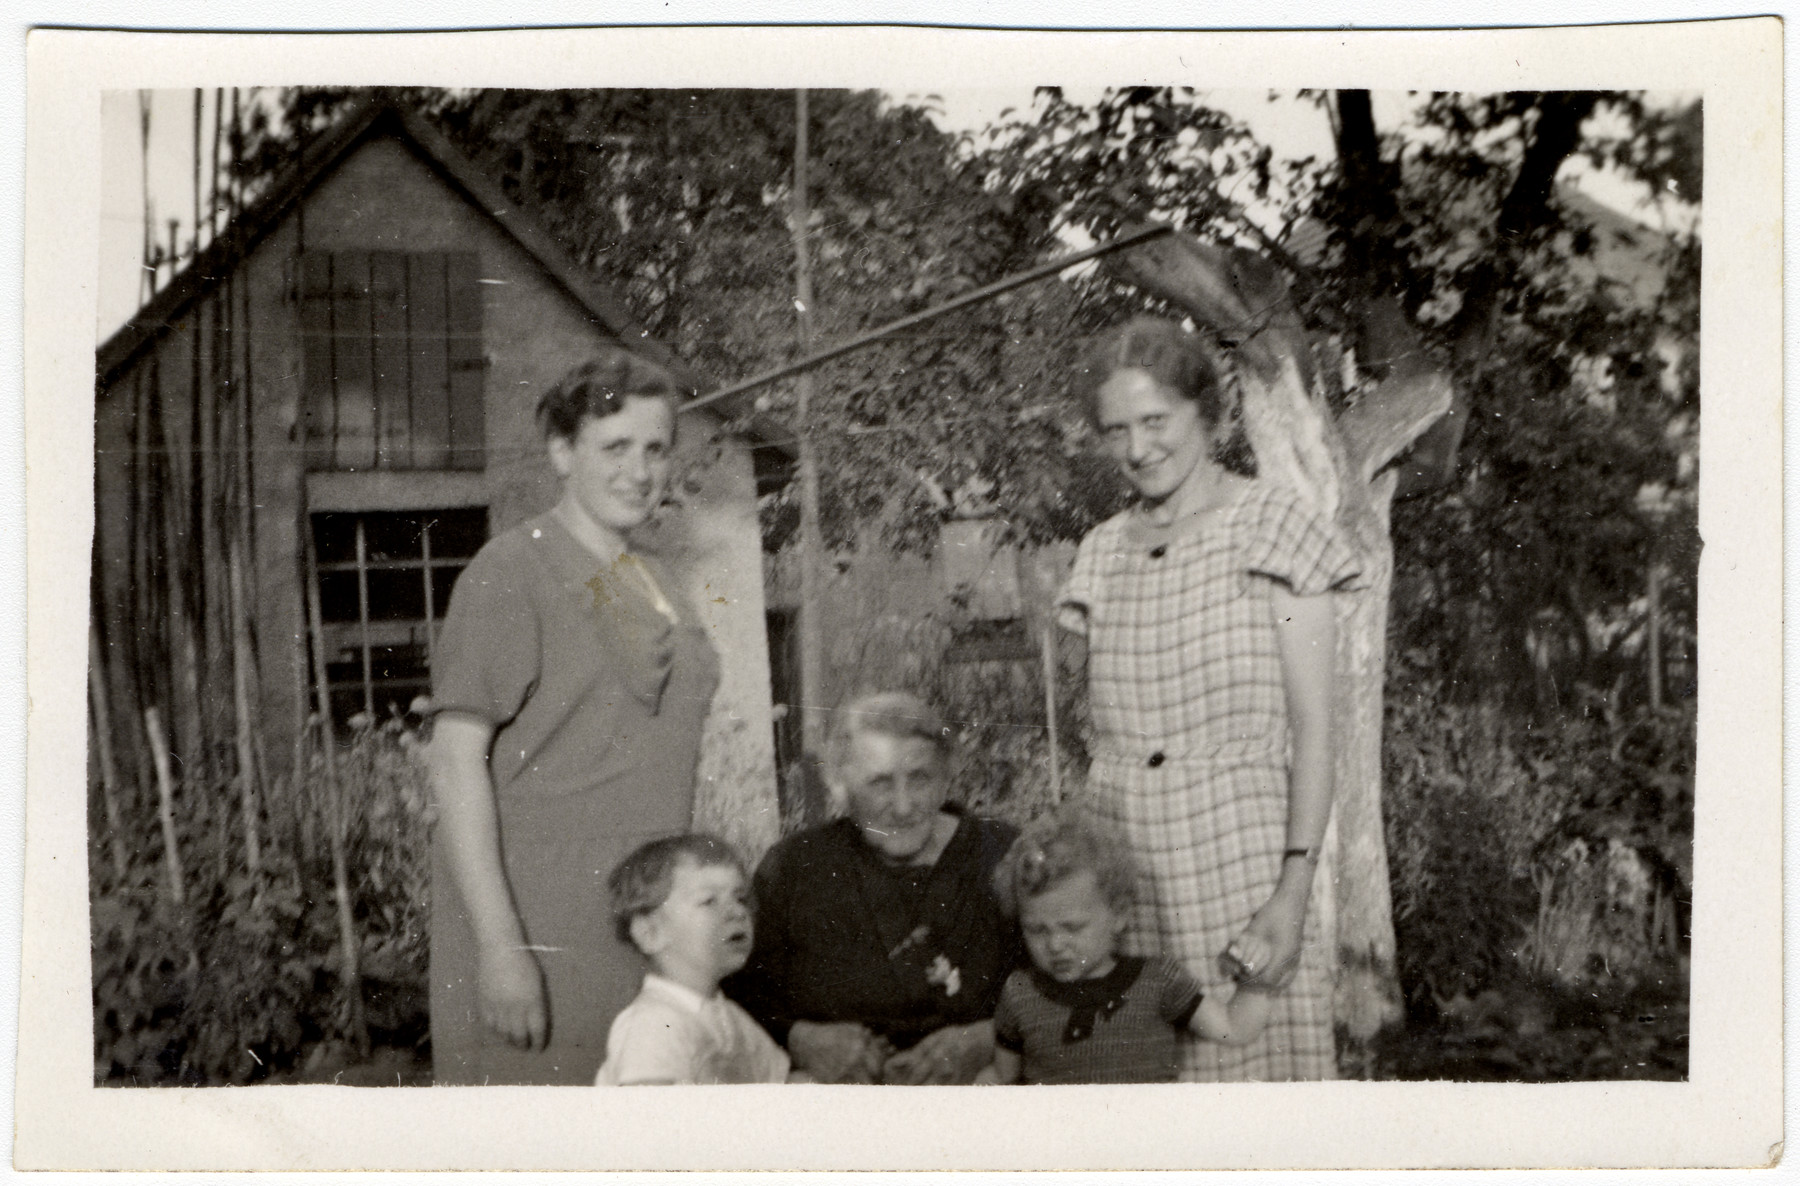 Members of the Wetzler and Weilheimer family pose outside in a garden.  Pictured in the center is the grandmother of Lilly Weilheimer.  Lilly Weilheimer is standing on the right holding the hand of either Richard or Ernst.